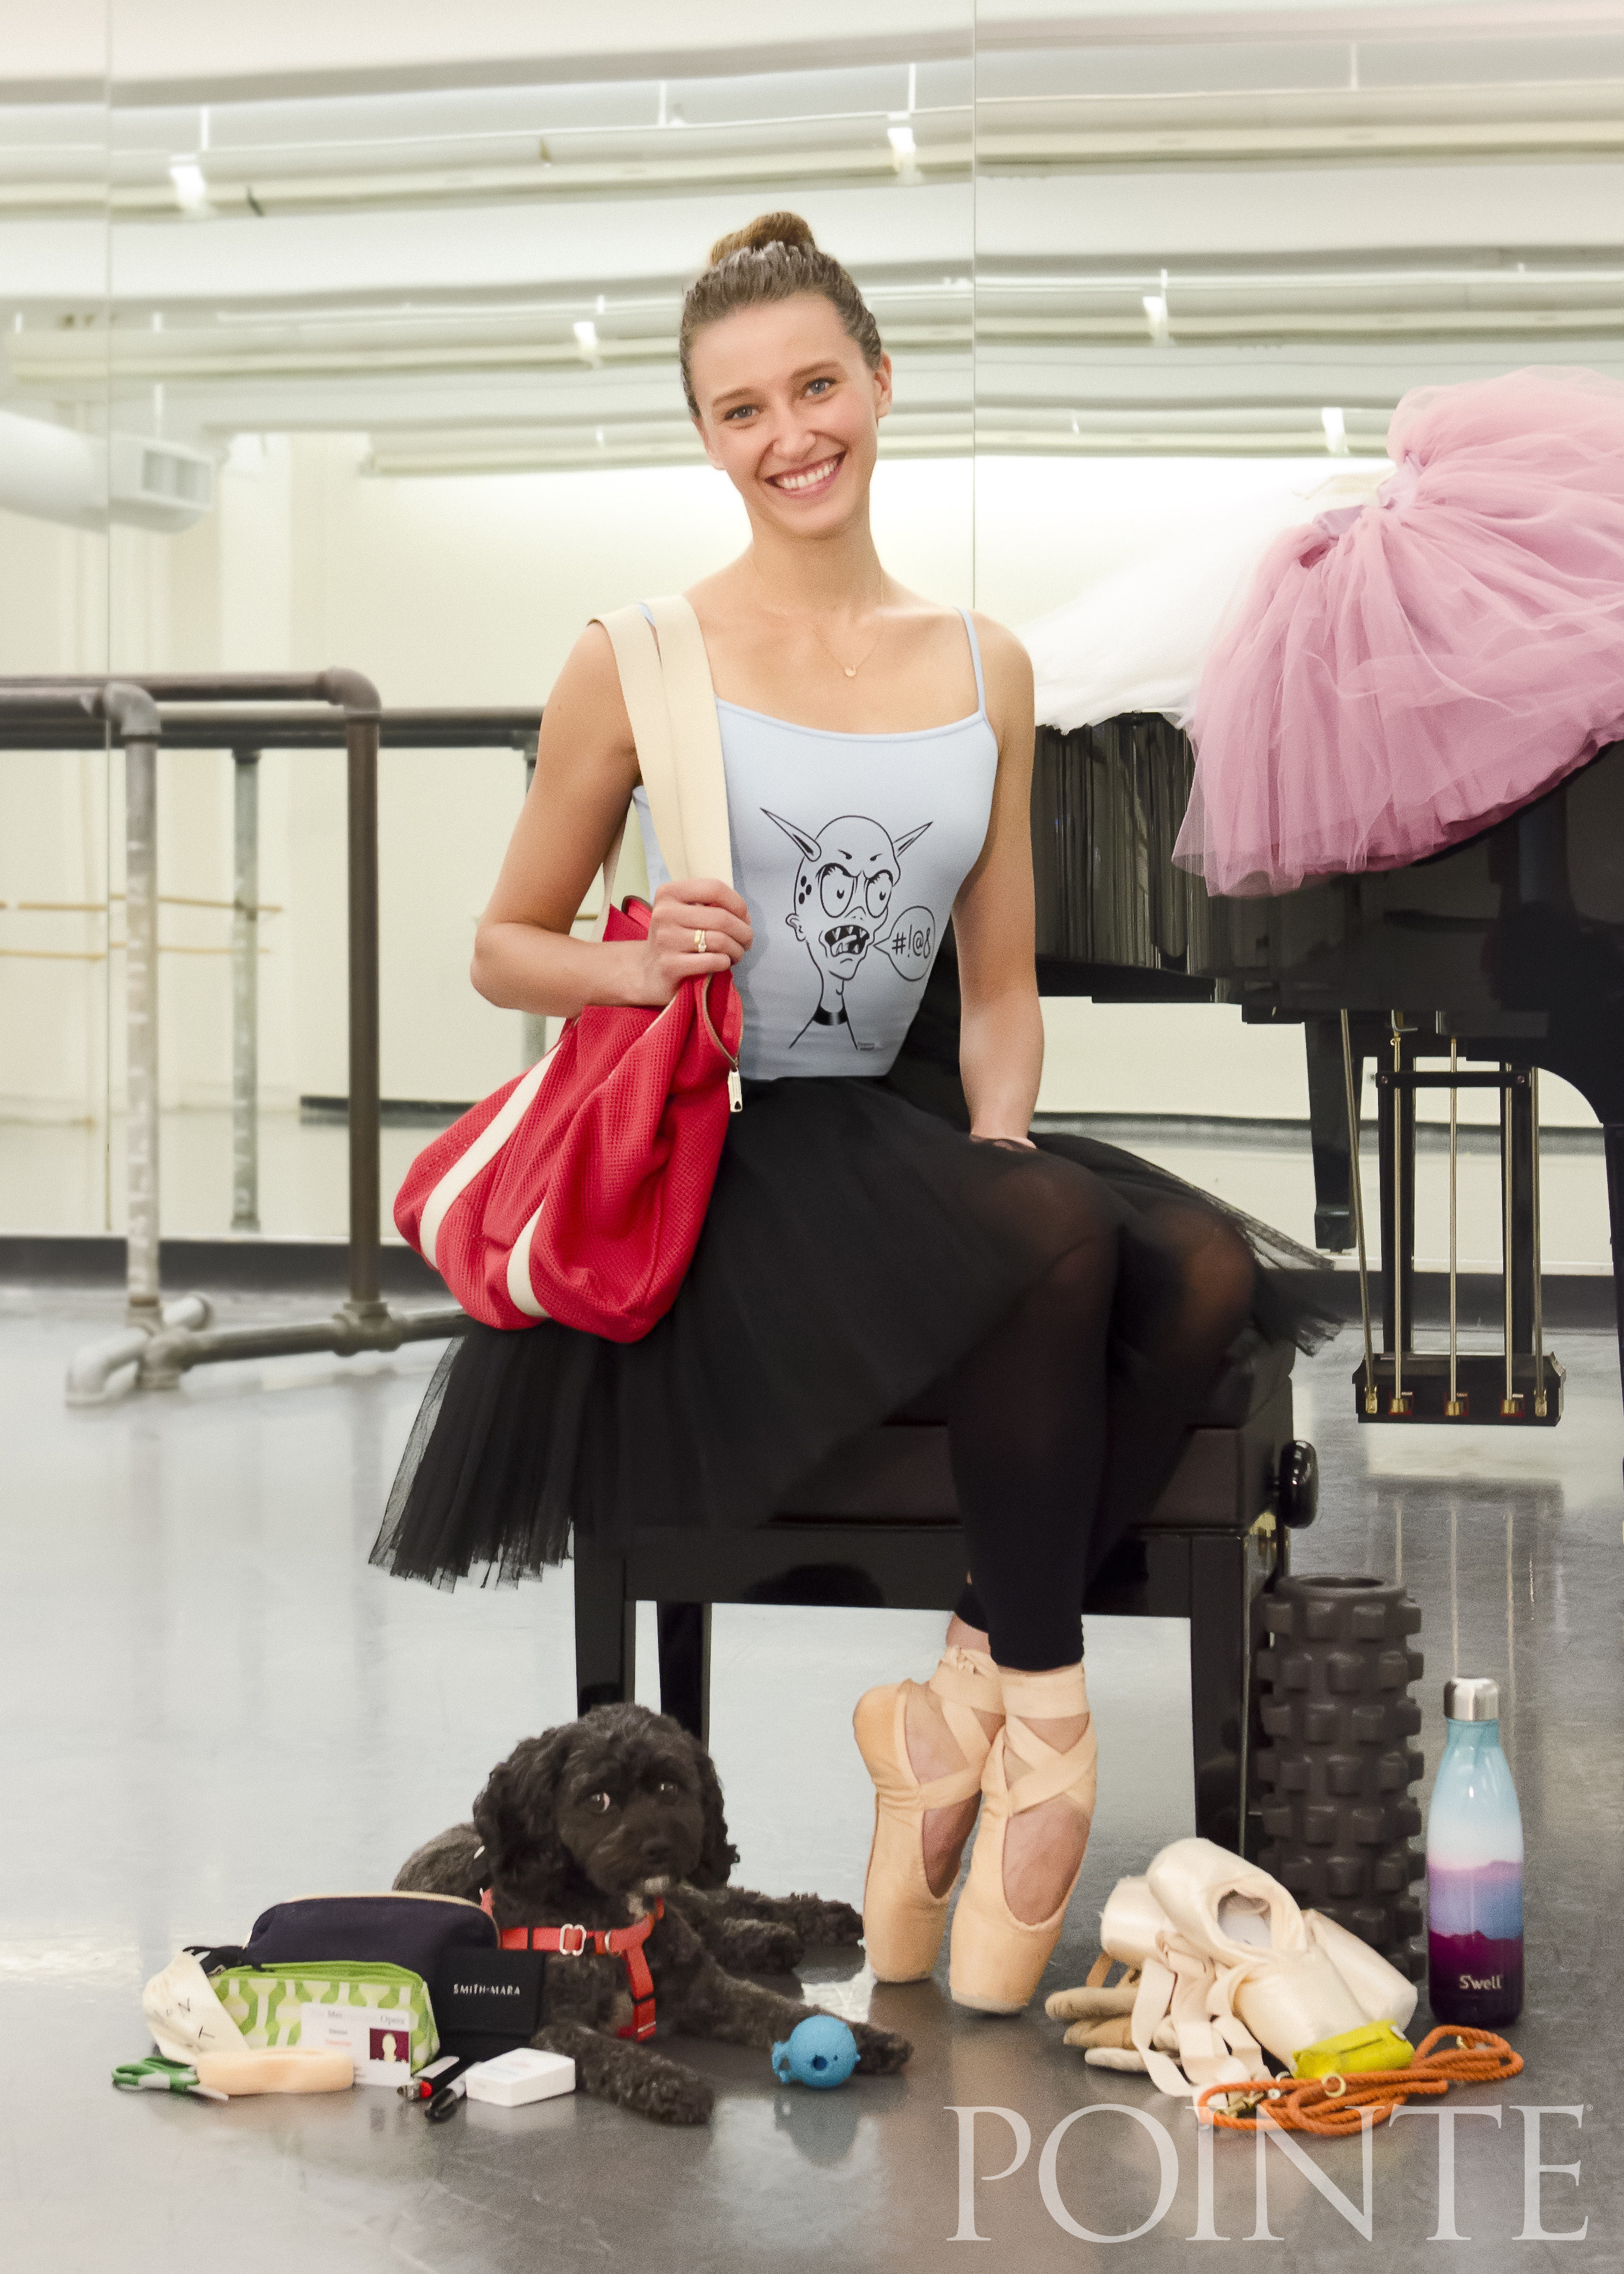 See Every Dance Bag Essential for ABT's Devon Teuscher and Her Dog Riley